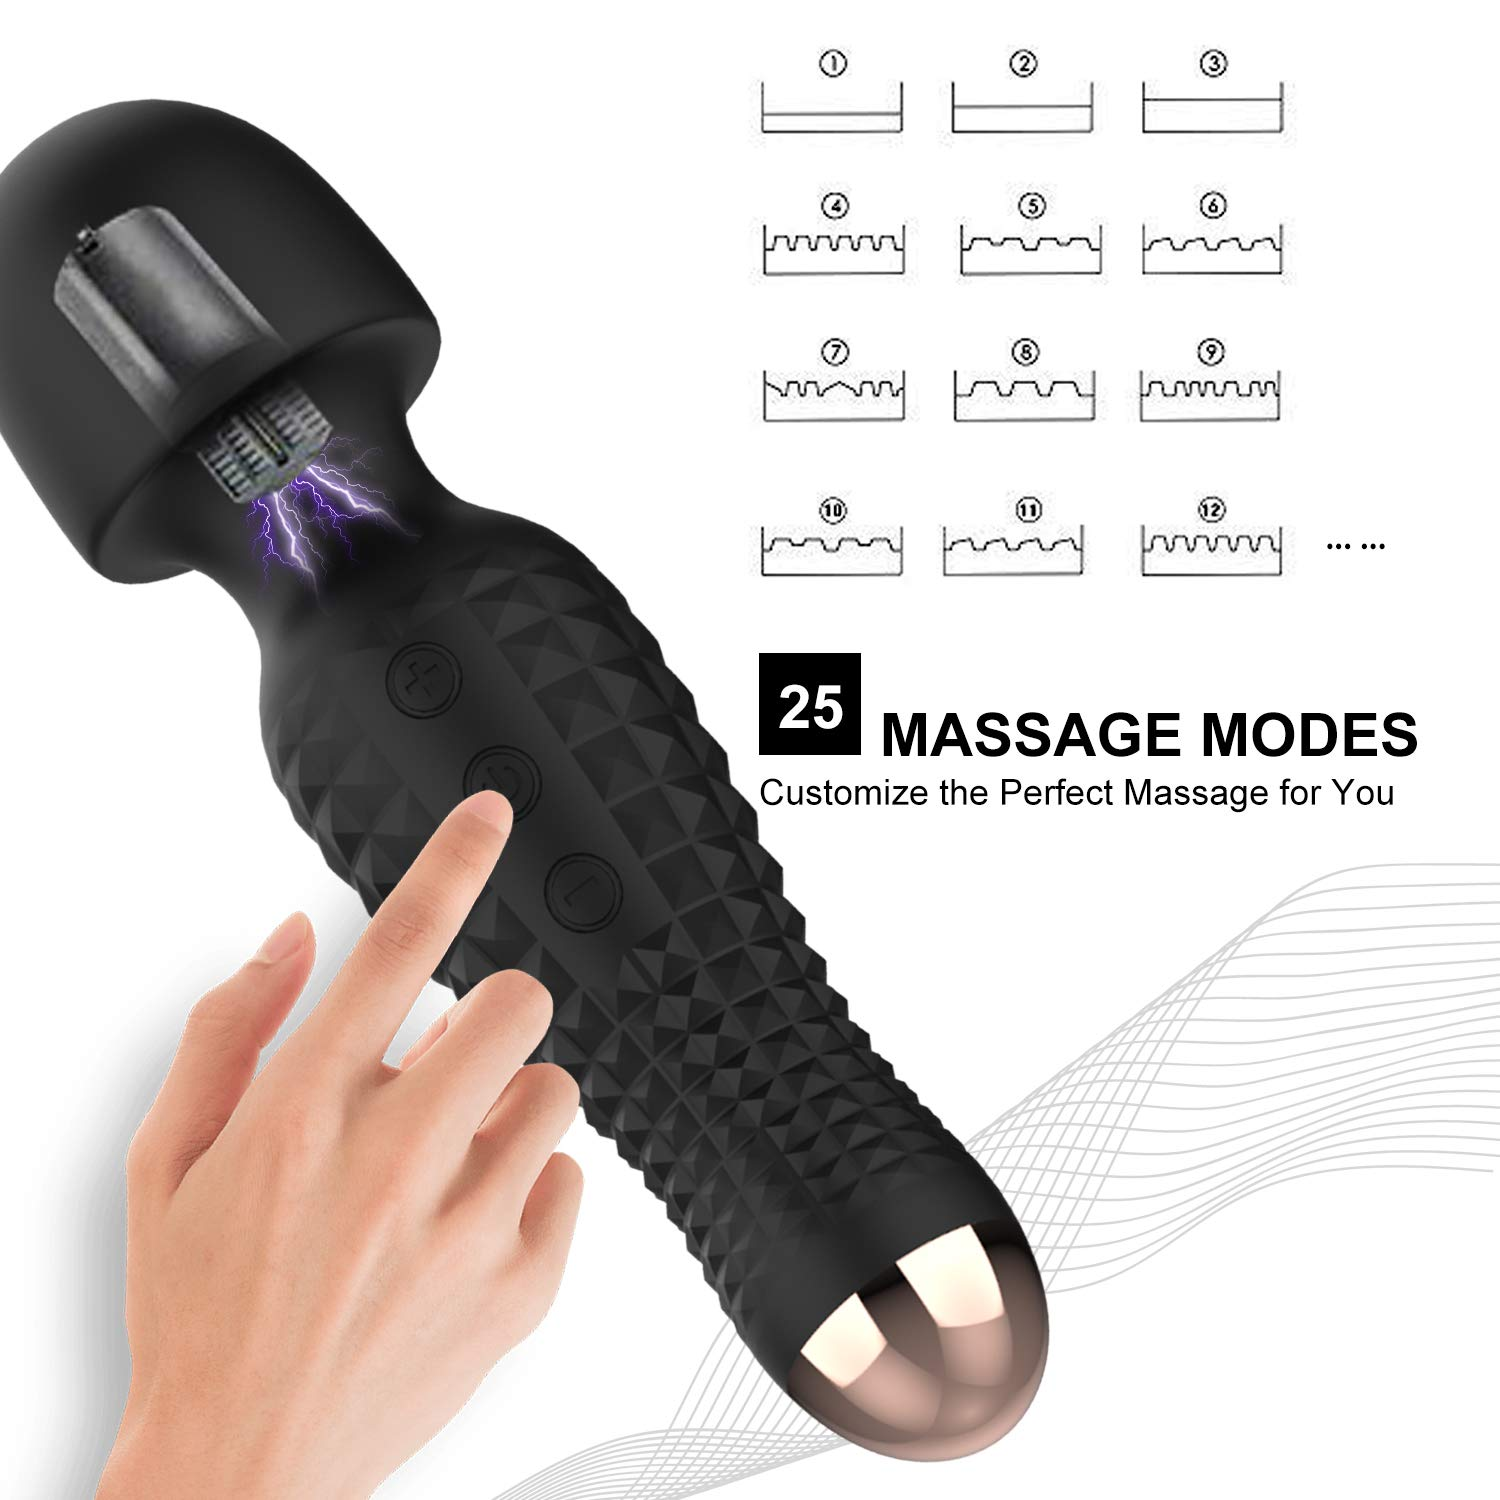 Personal Therapeutic Massage Wands, Handheld Cordless Massage Wand Rechargeable with 12 Powerful Vibration Modes for Full Body Massaging Sports Recovery & Muscle Aches Original Magic Wands (Black)